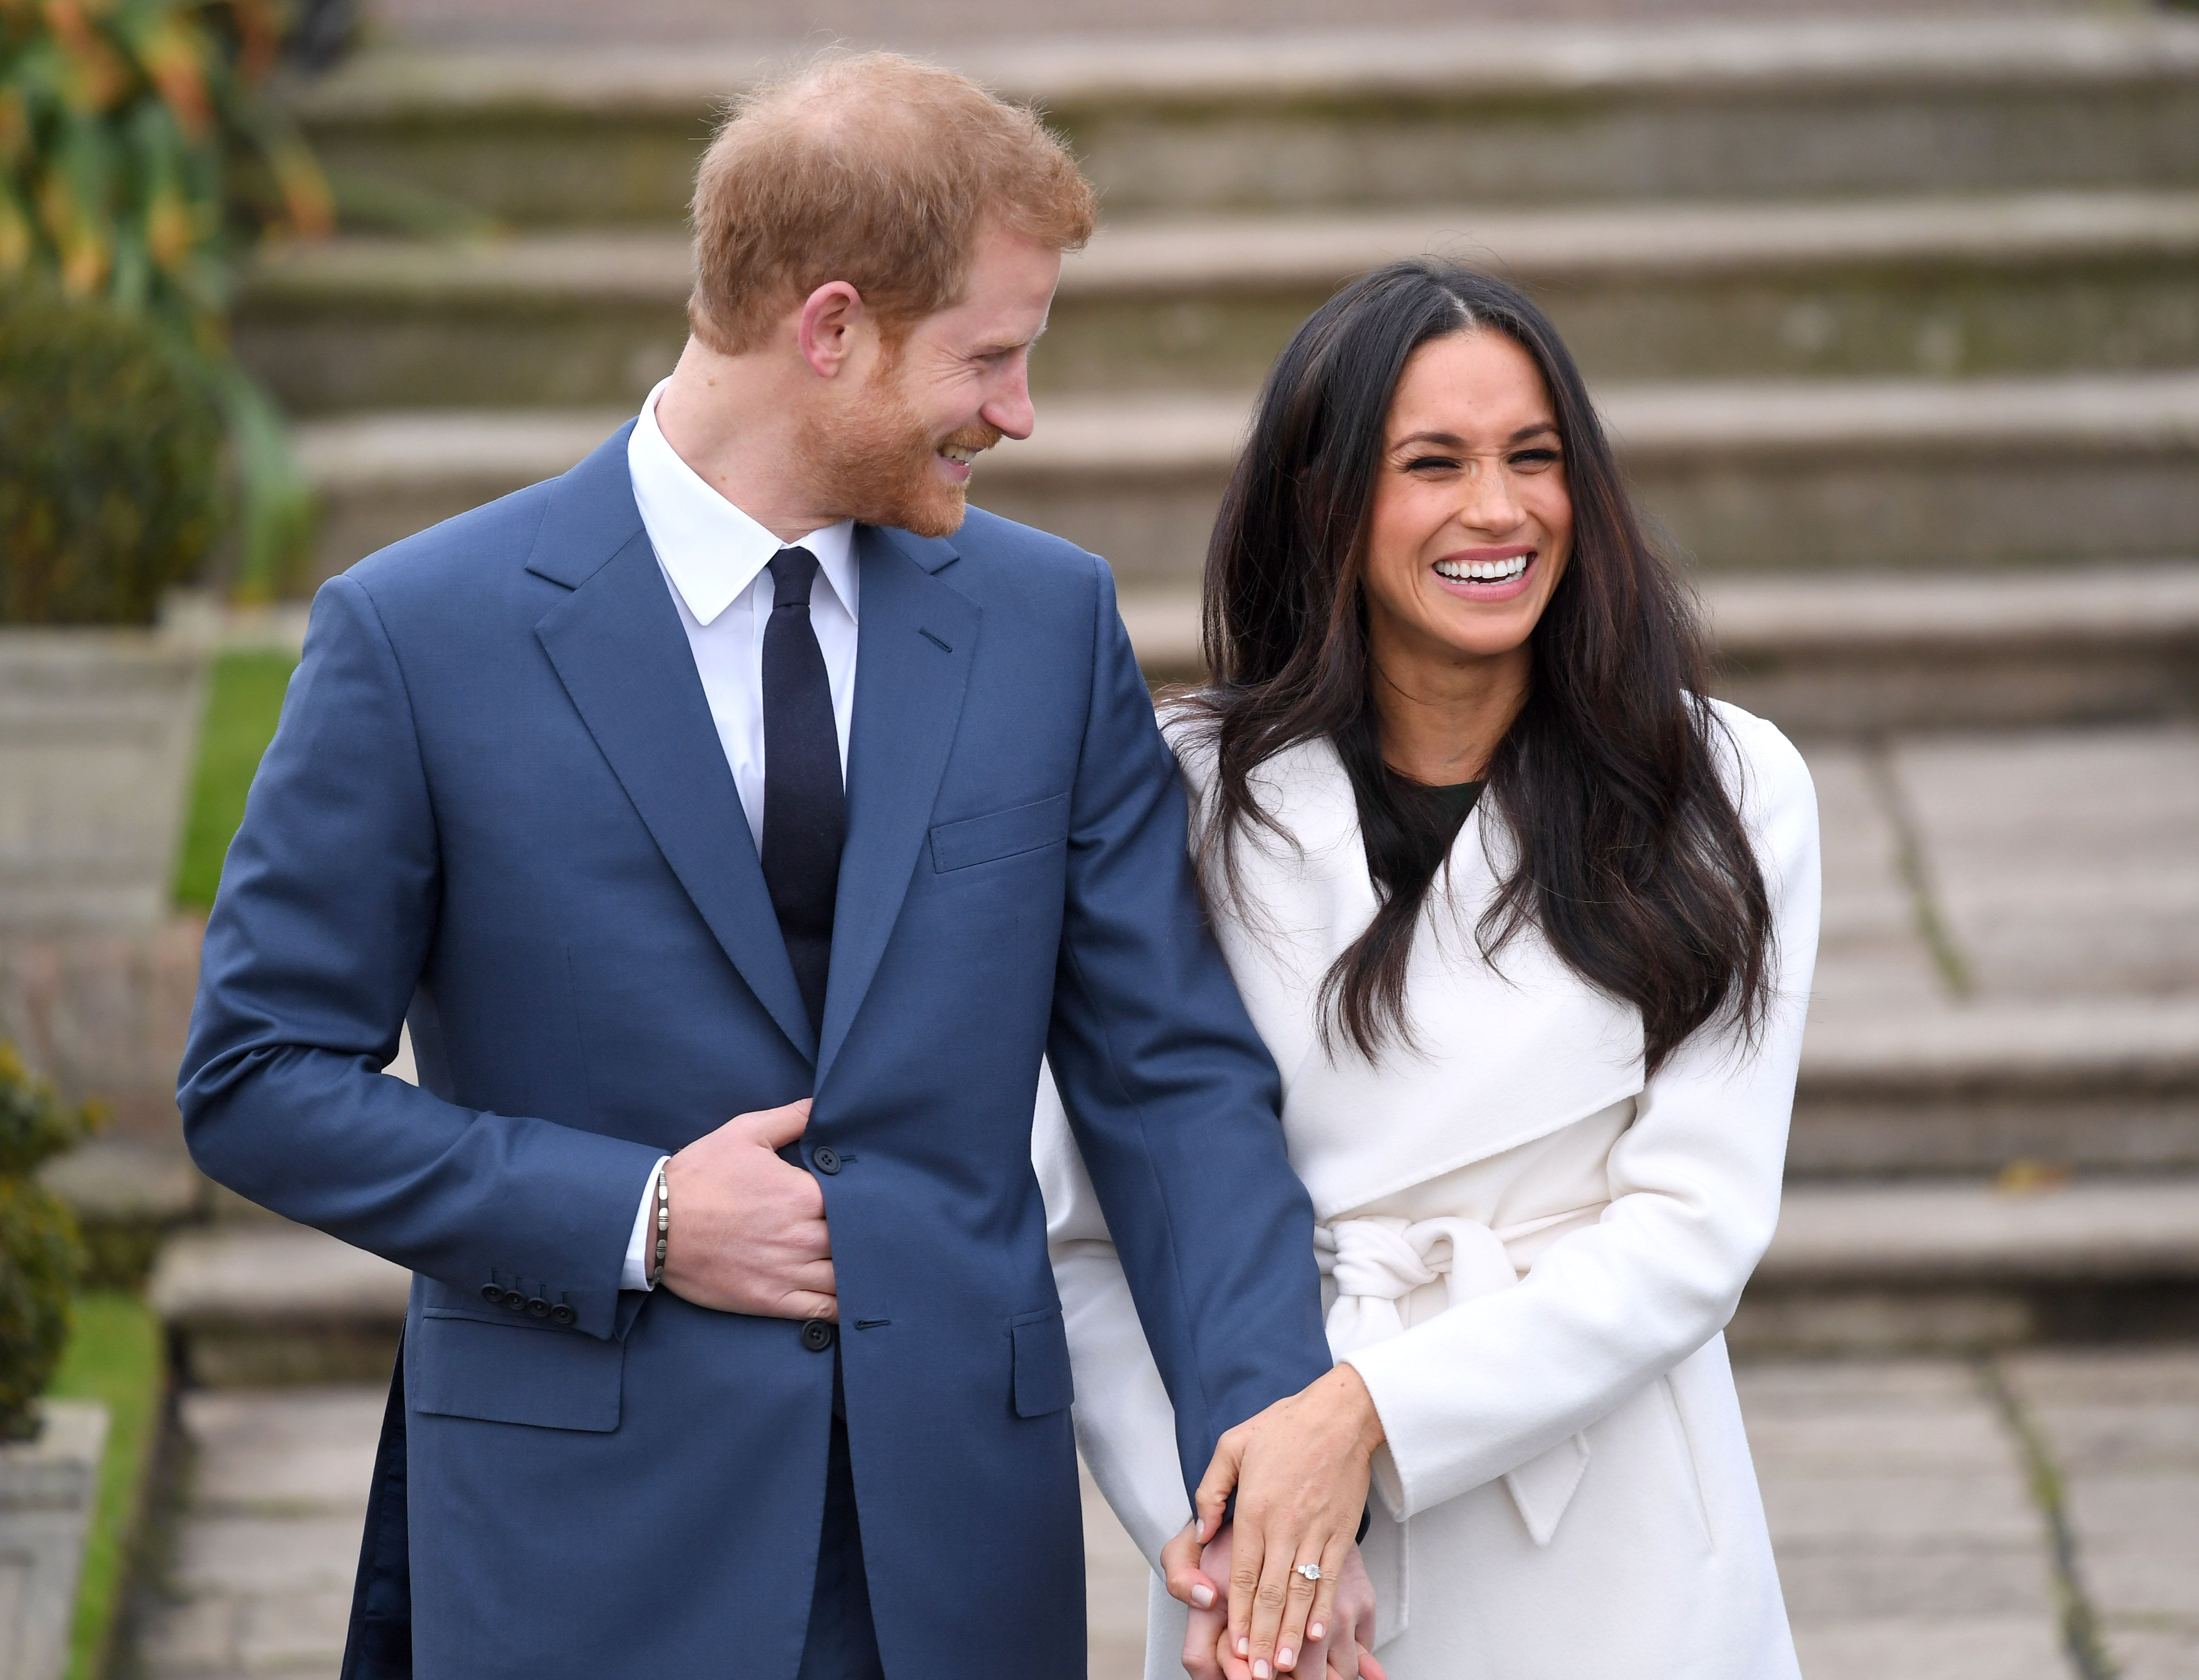 Wait, Meghan Markle Updated Her Engagement Ring So It Has MORE Diamonds